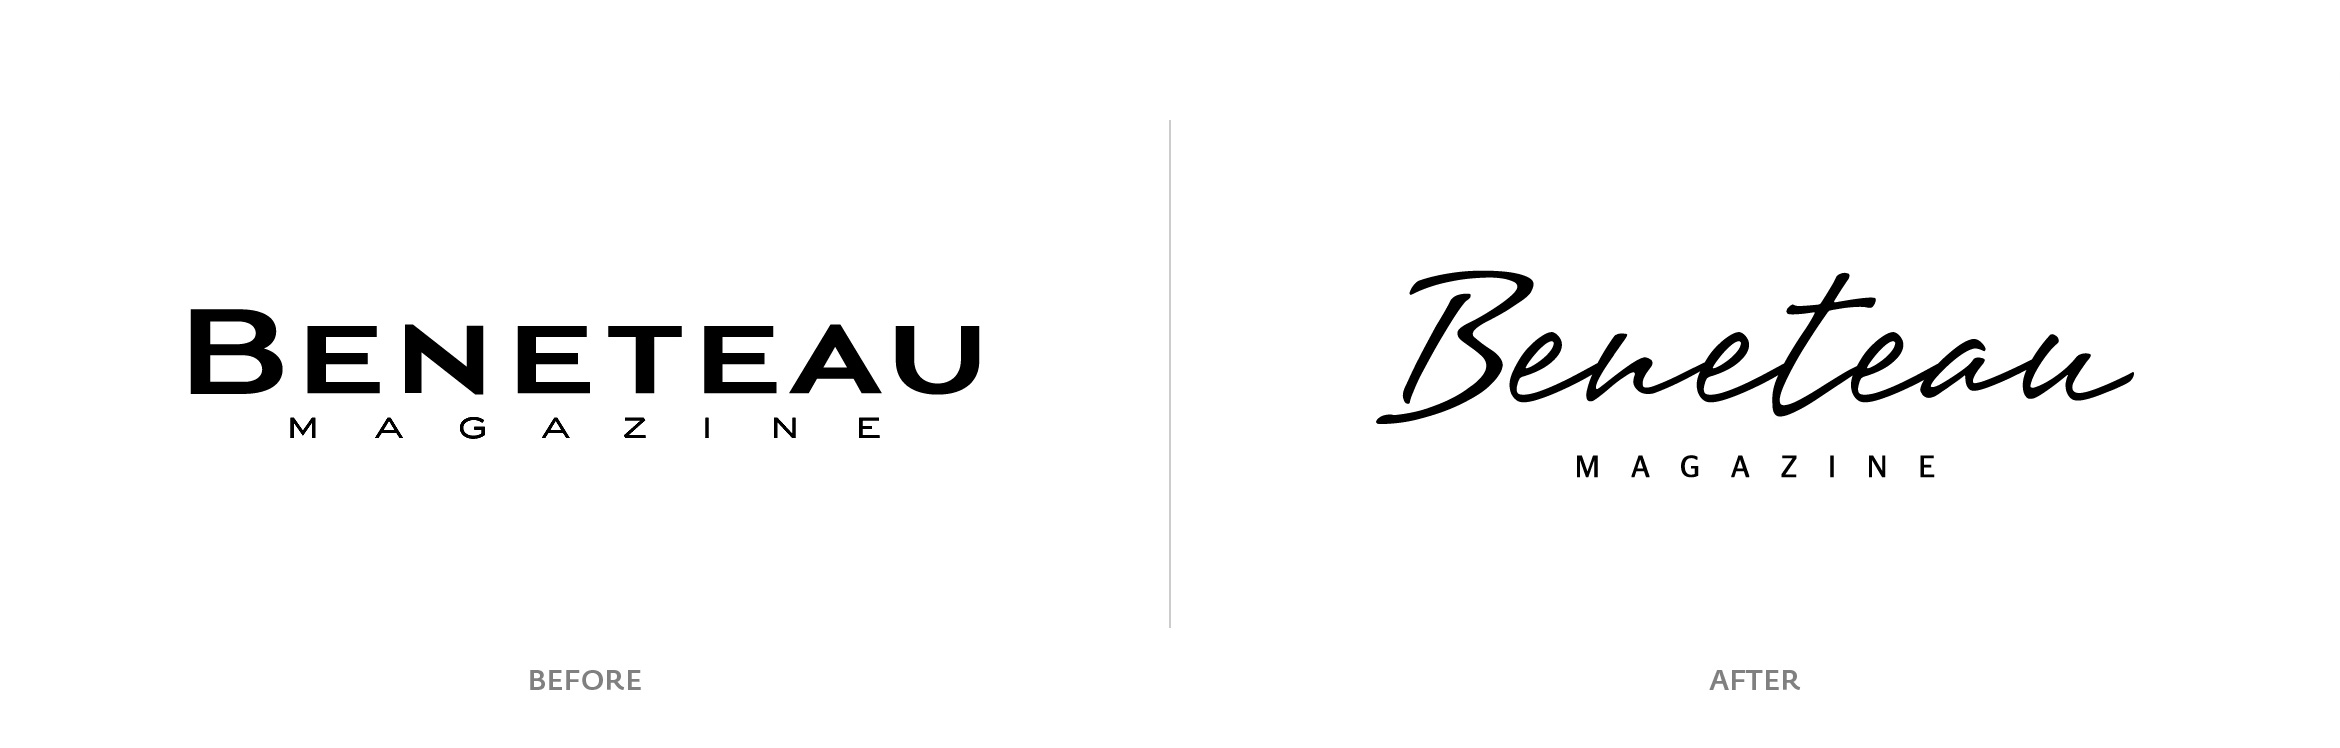 Logo before after